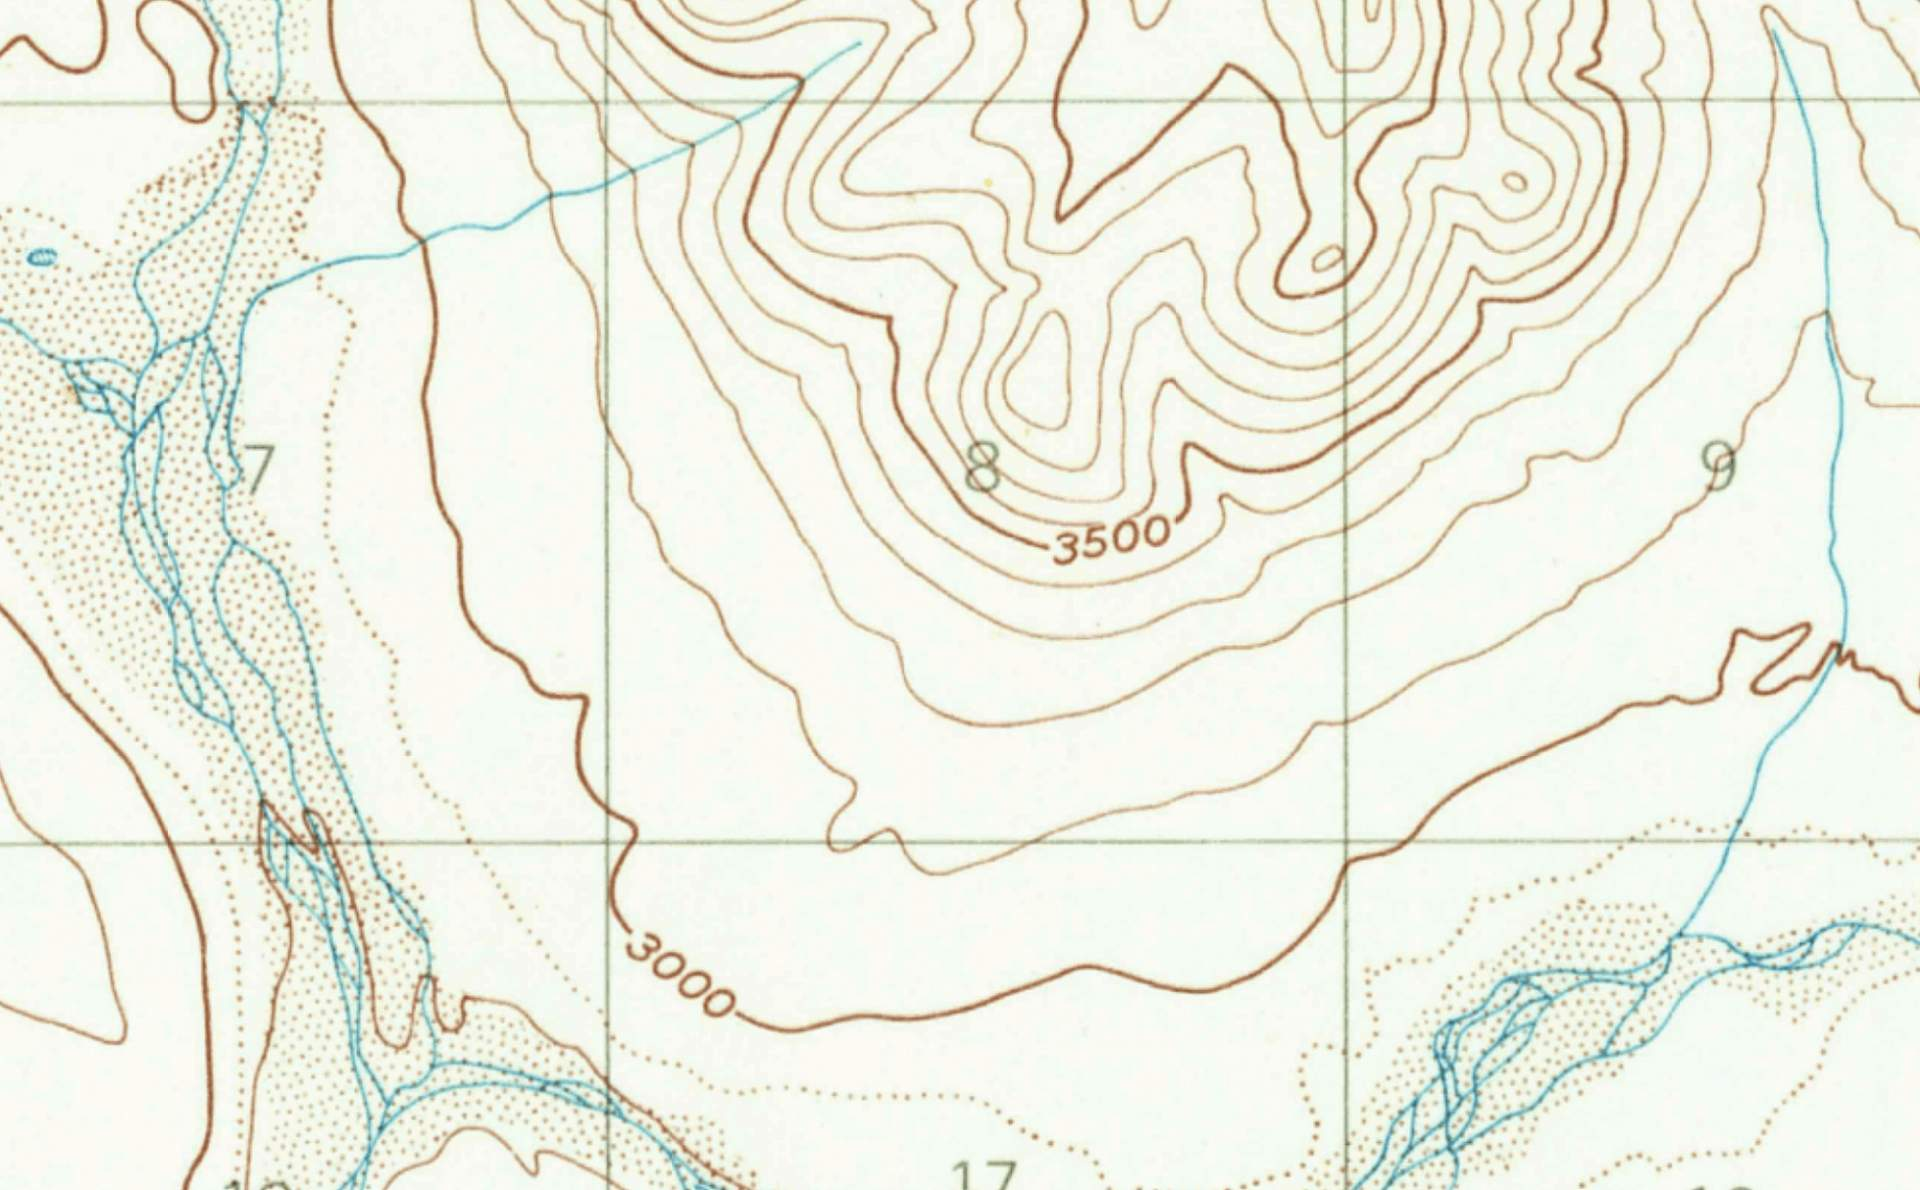 AC Image Backcountry Navigation Topo with zoomed in topo lines